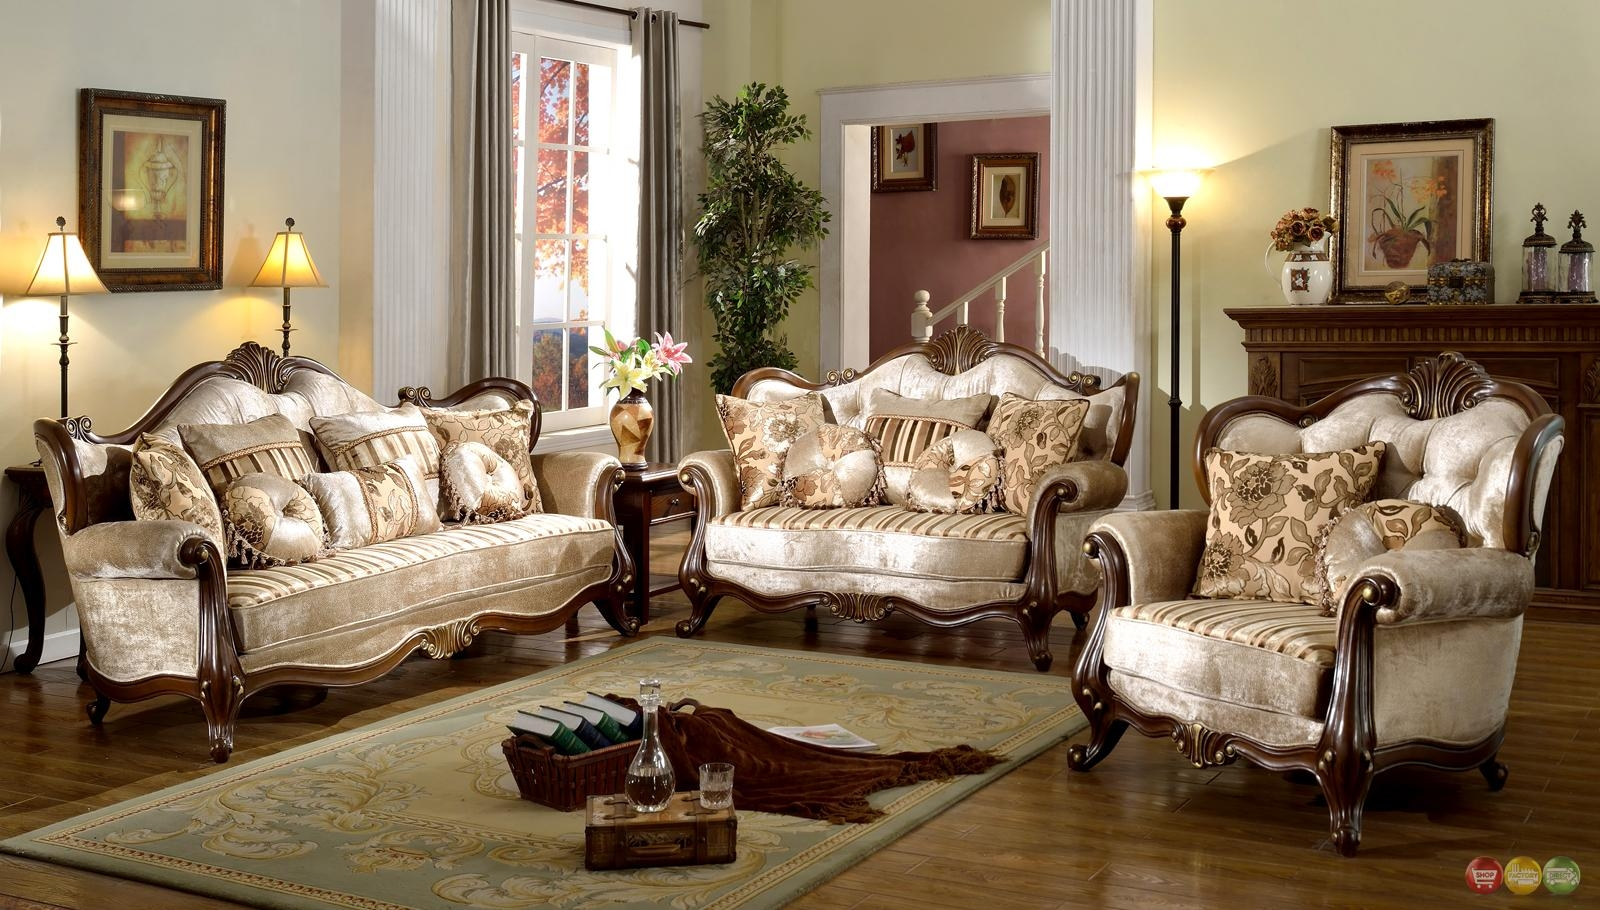 French Provincial Formal Antique Style Living Room Furniture Set Intended For Living Room Sofa Chairs (Image 7 of 20)